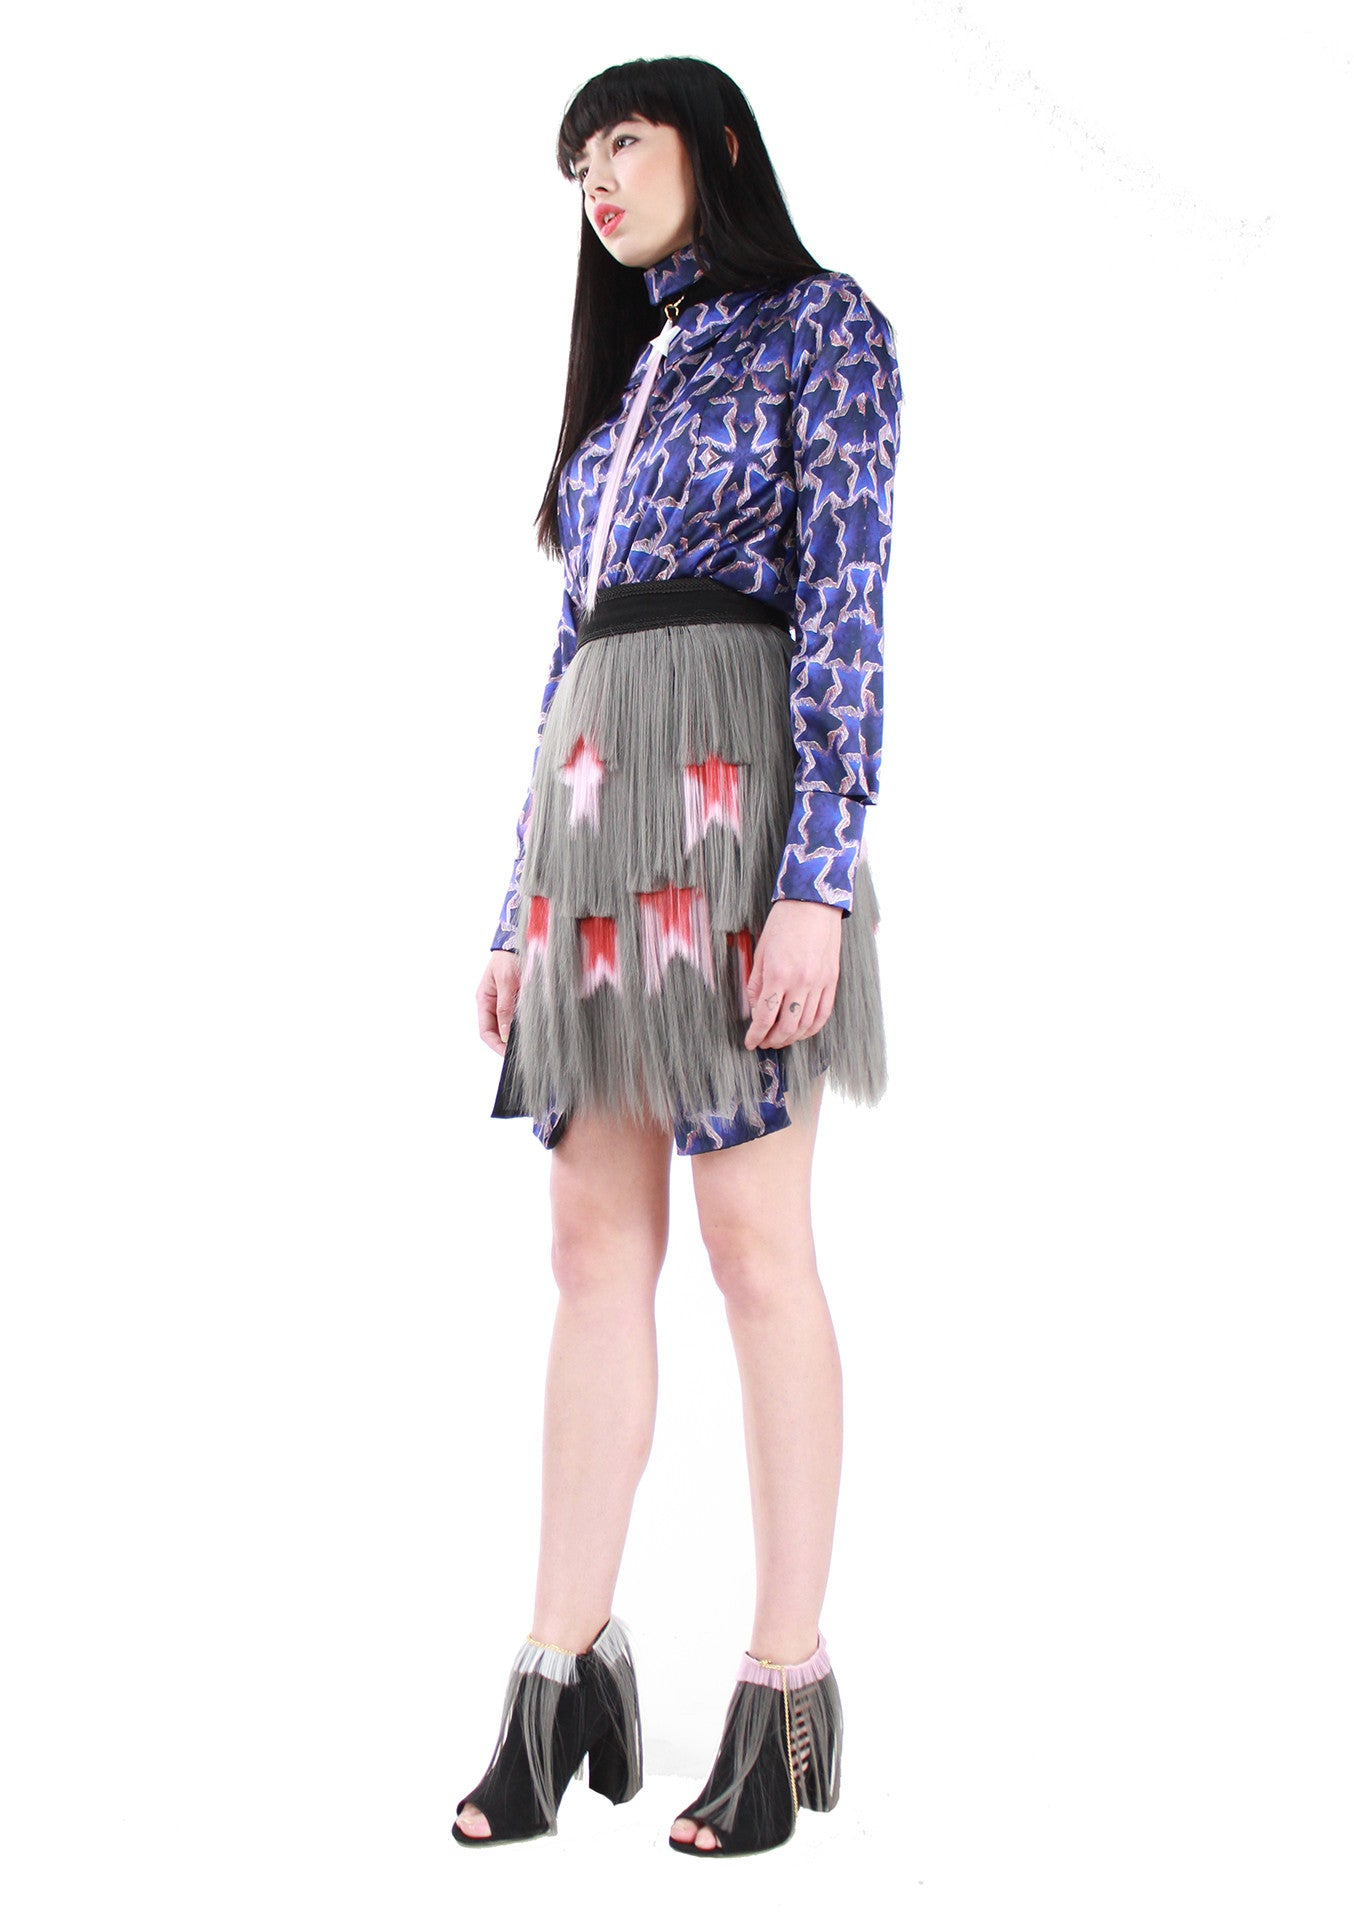 Grey Signature Middle Skirt A/W 17